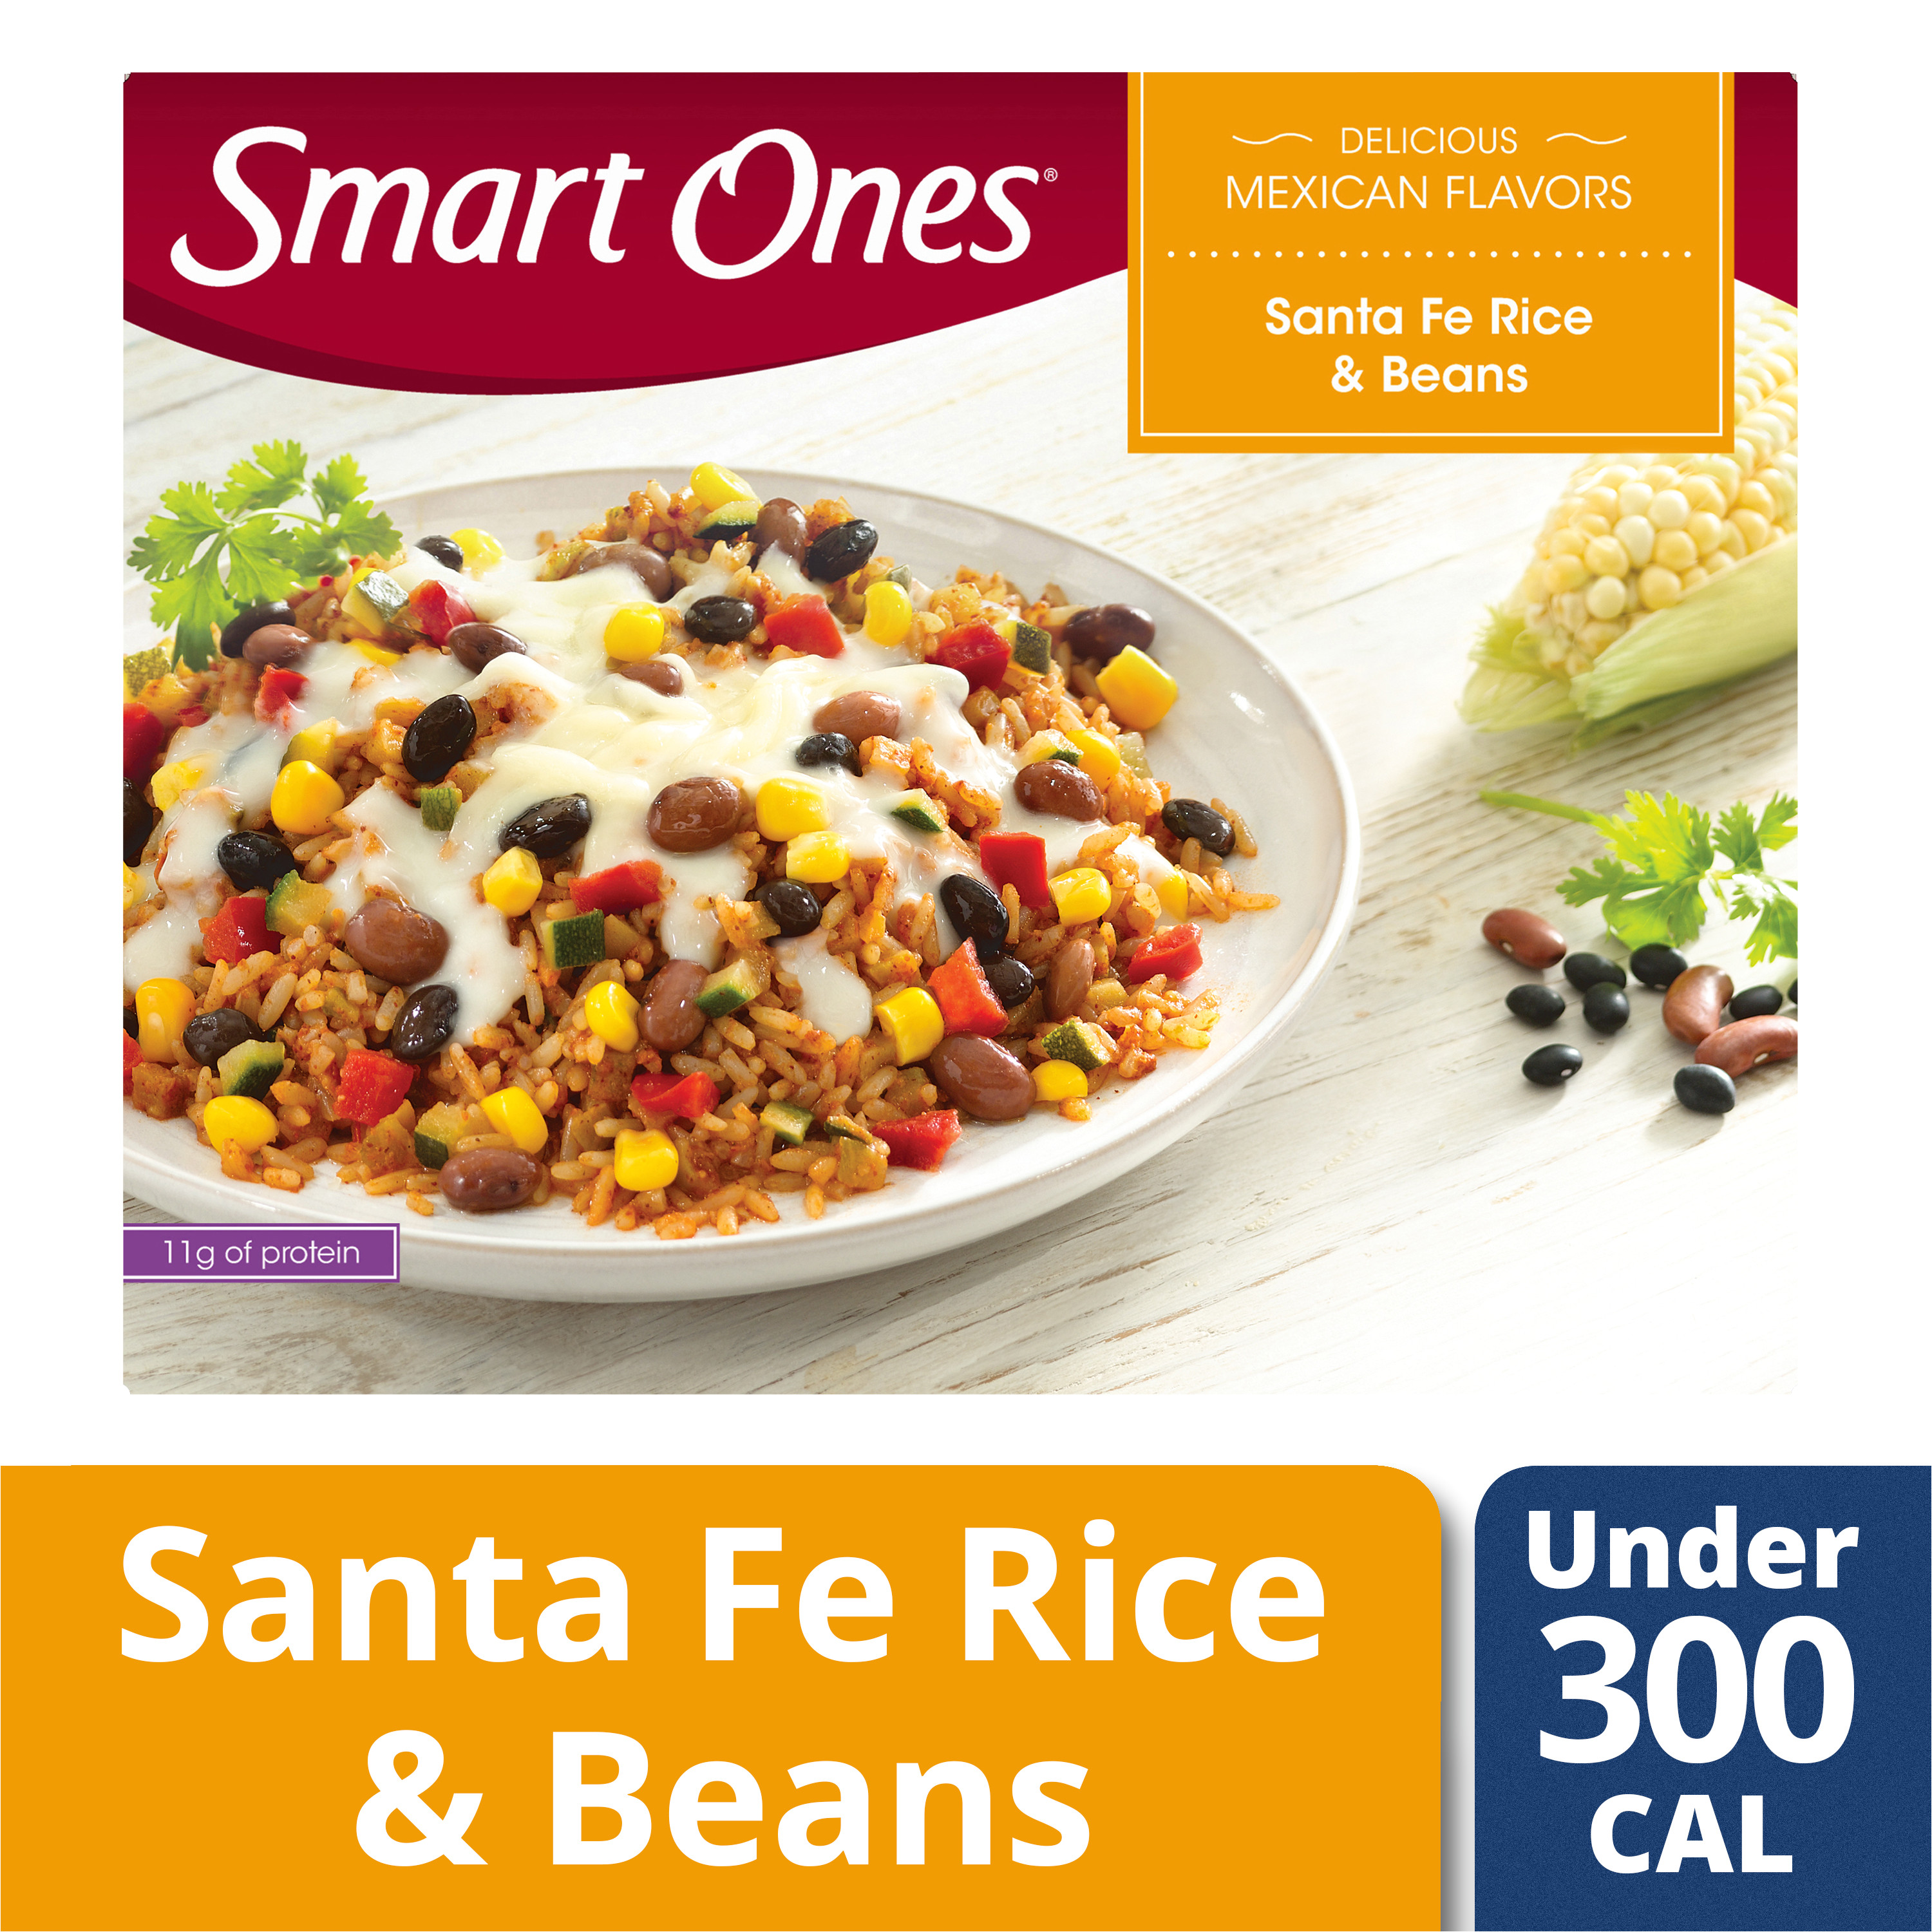 weight watchers smart ones delicious mexican flavors santa fe rice beans 9 oz box walmart com